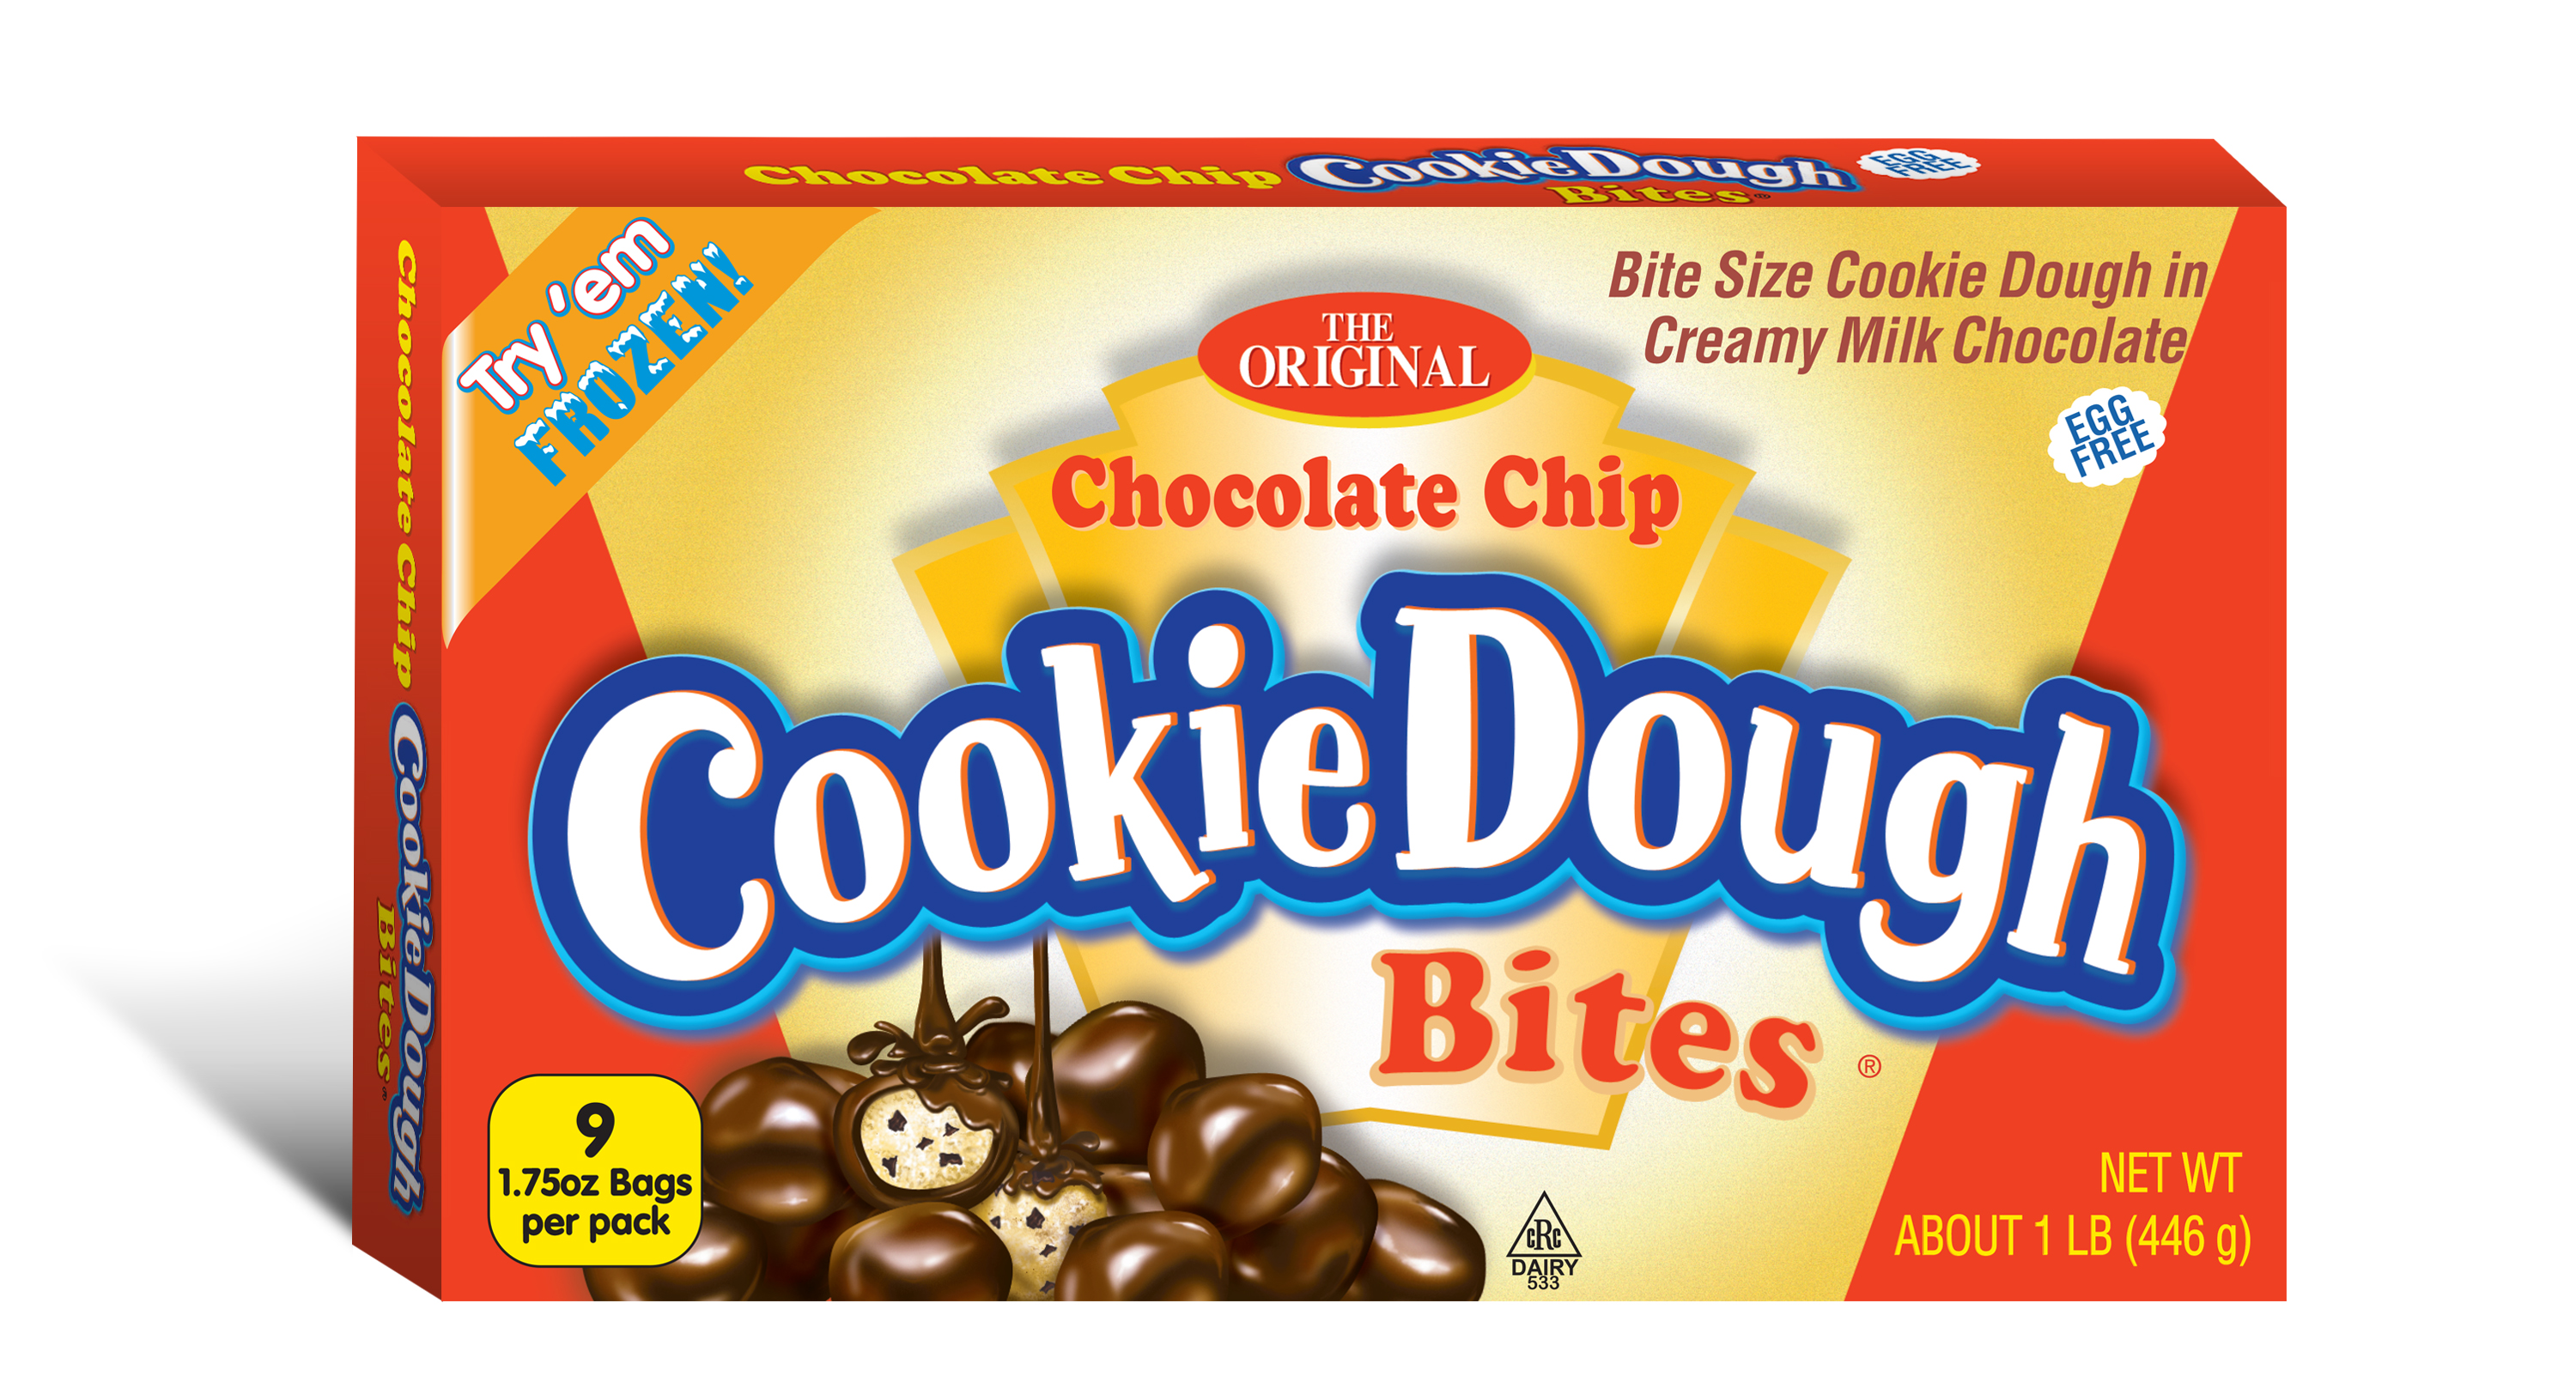 Ginormous Cookie Dough Bites Box Chocolate Chip 1 lb, 6 Ct by Taste of Nature, Inc.